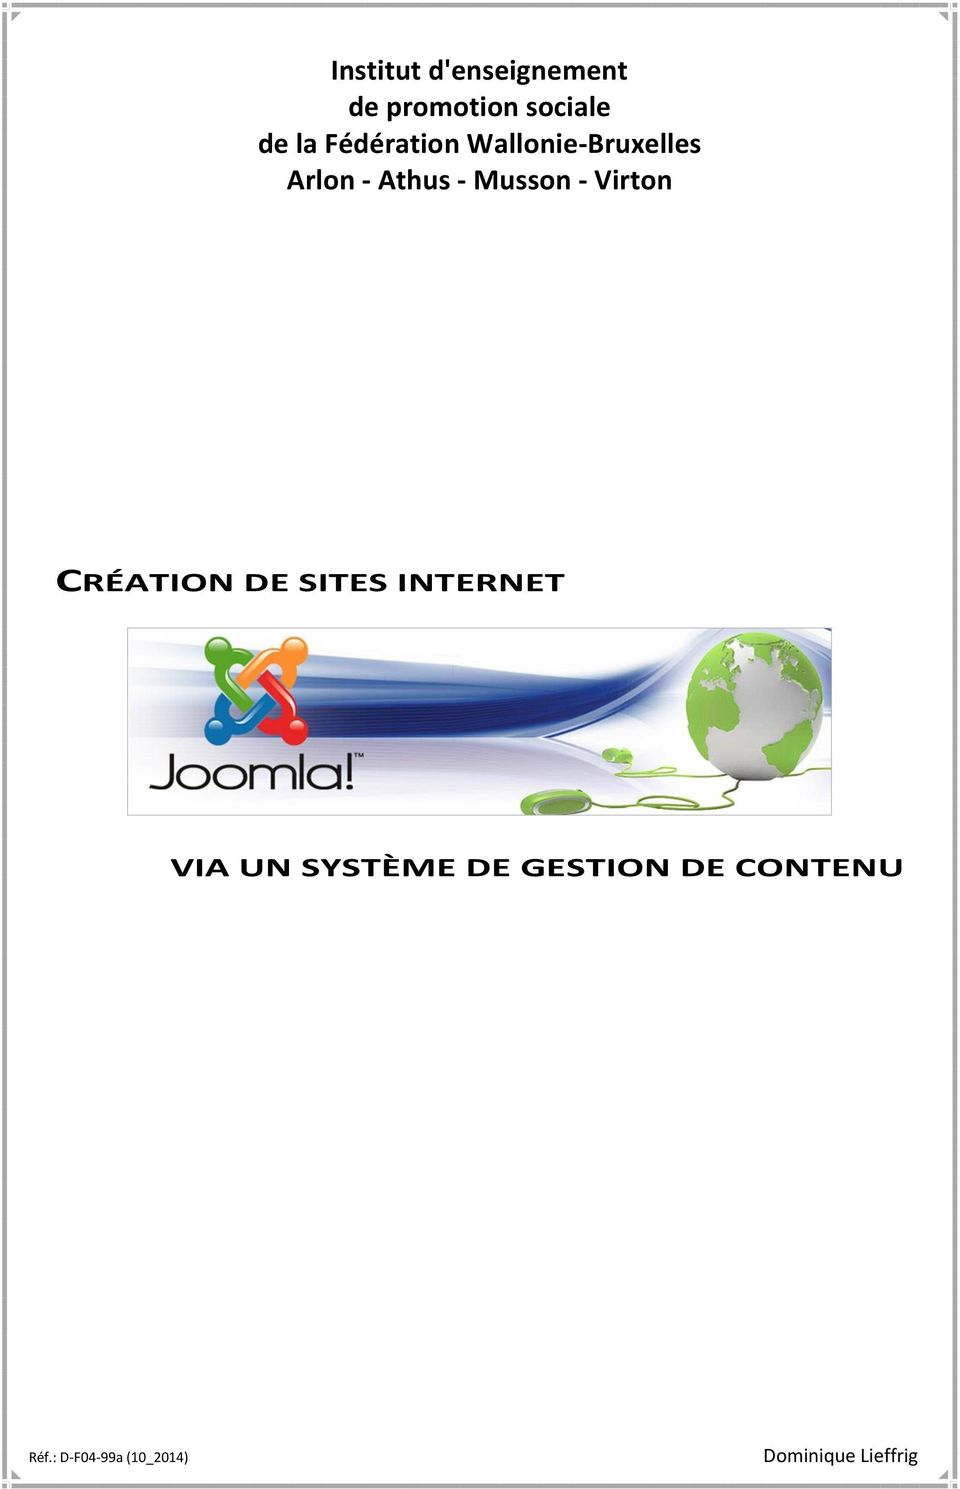 Musson - Virton CRÉATION DE SITES INTERNET VIA